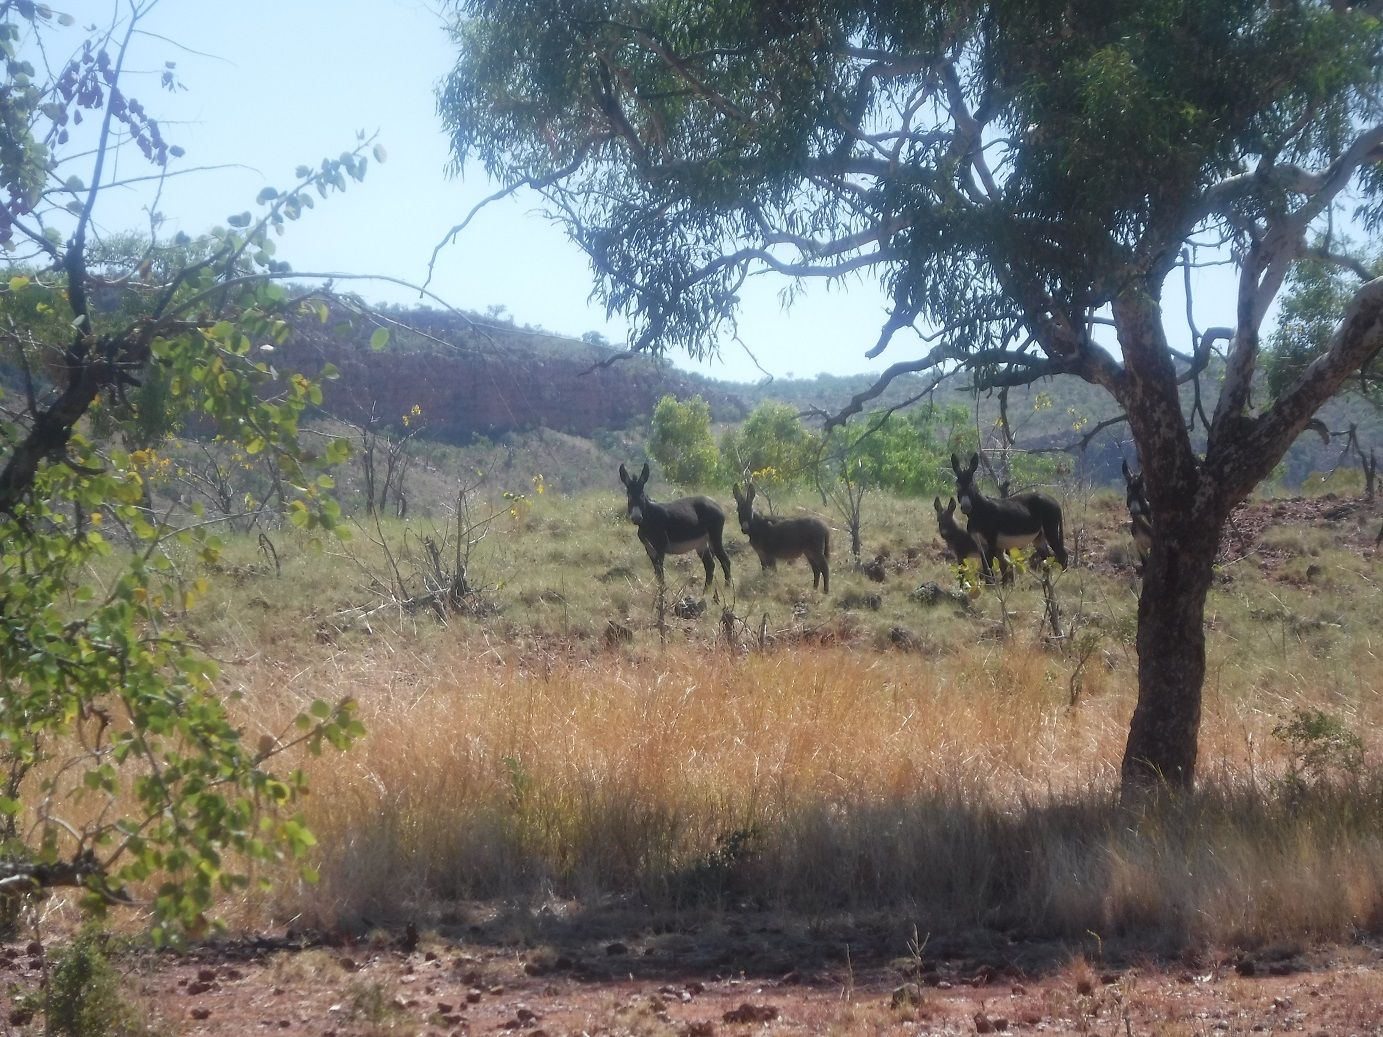 Donkeys reducing fuel-loads in areas where the cattle find life tough